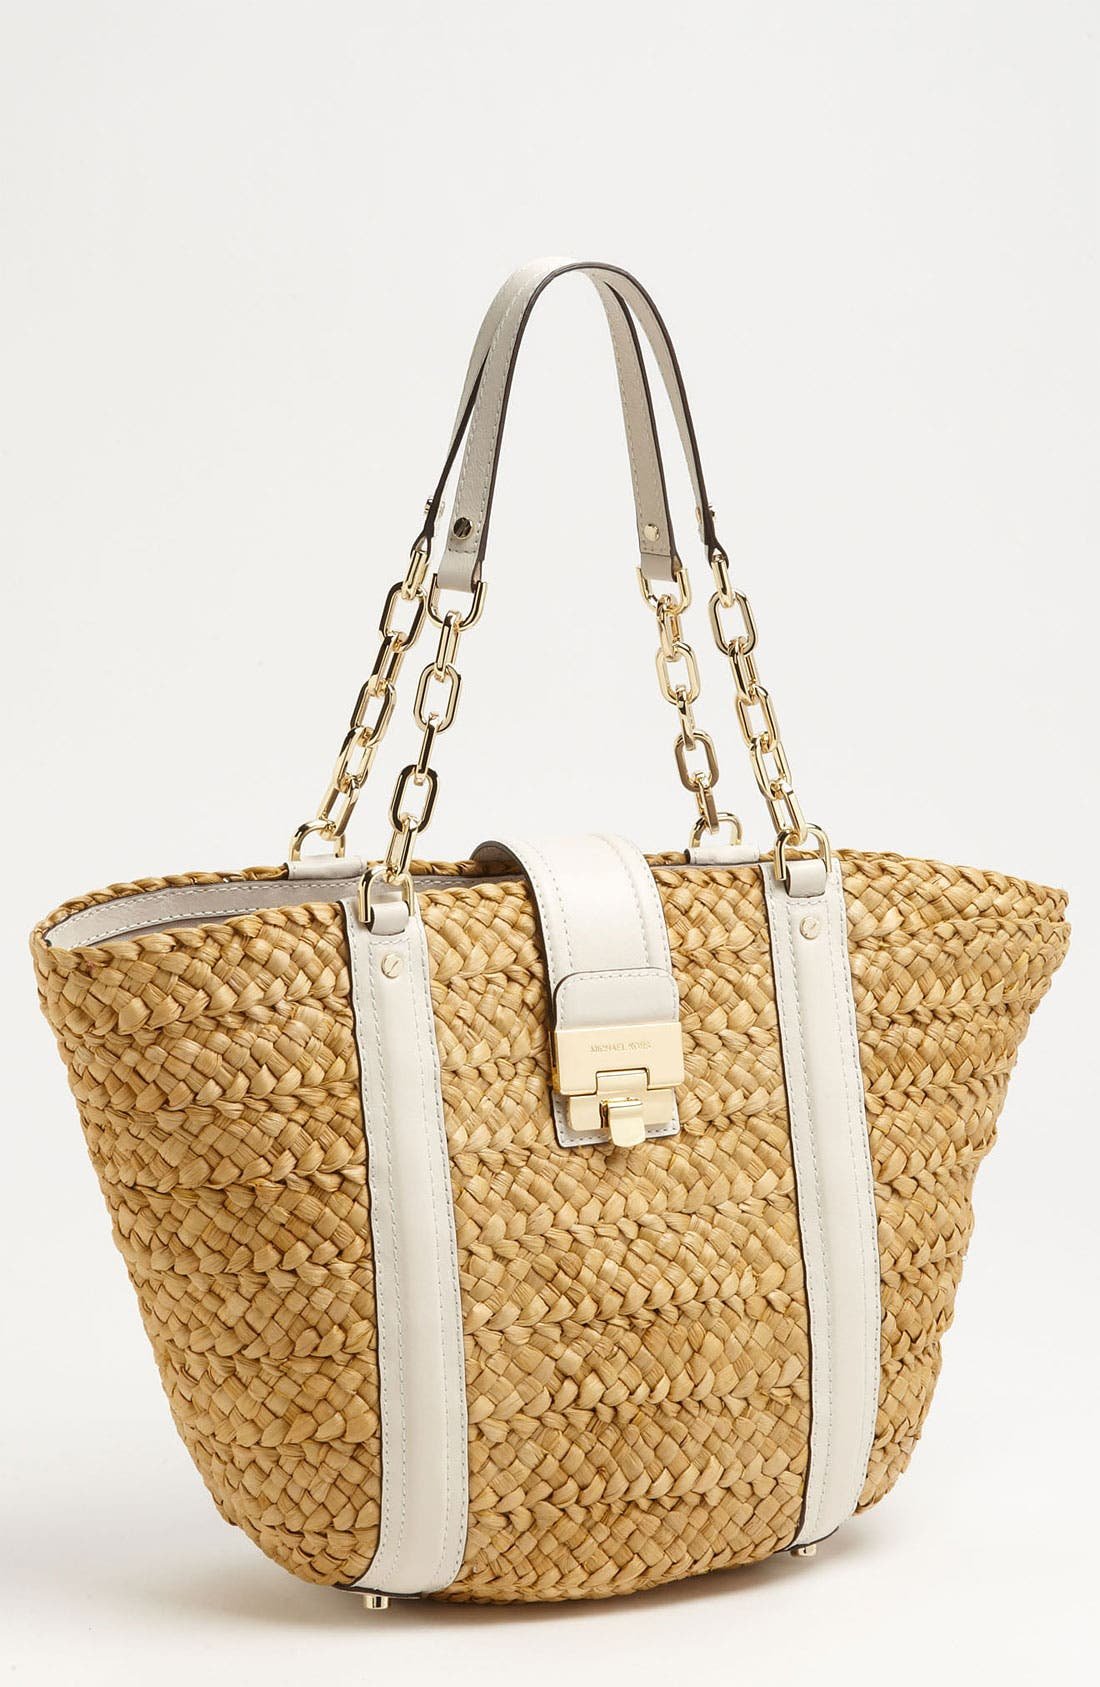 Alternate Image 1 Selected - MICHAEL Michael Kors 'Deneuve - Large' Straw Tote